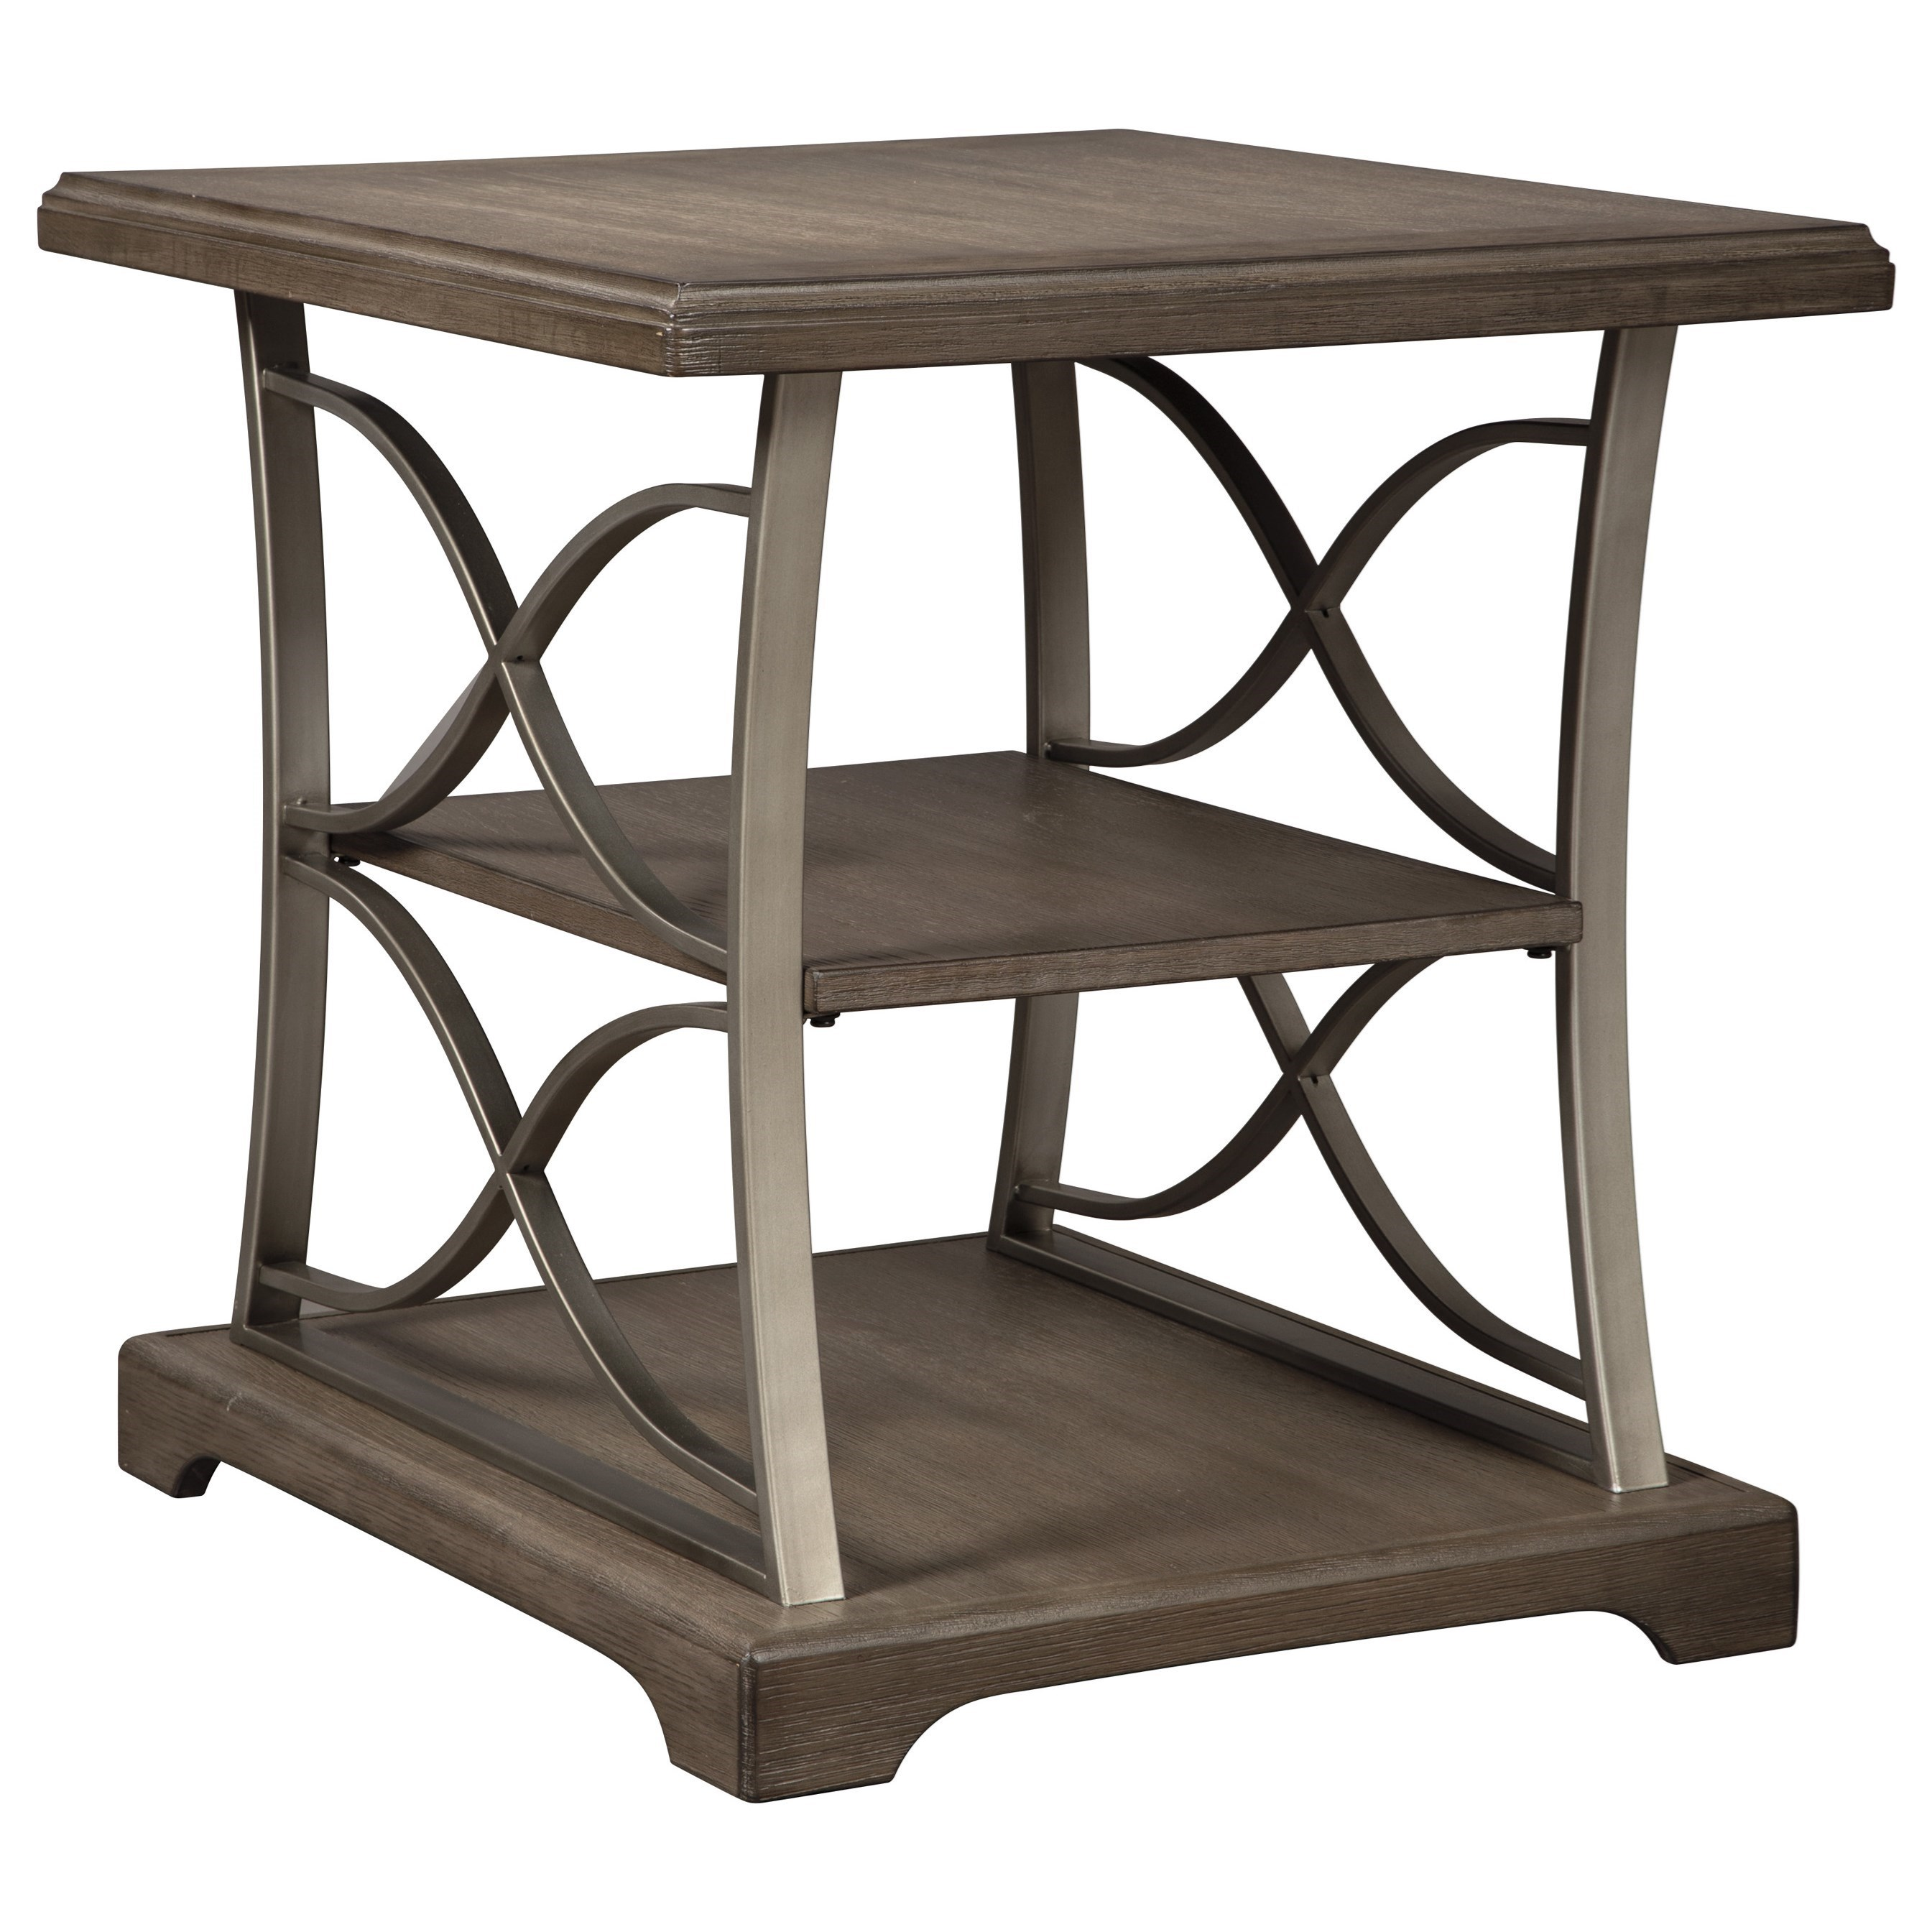 Signature Design by Ashley Baymore Rectangular End Table - Item Number: T634-3